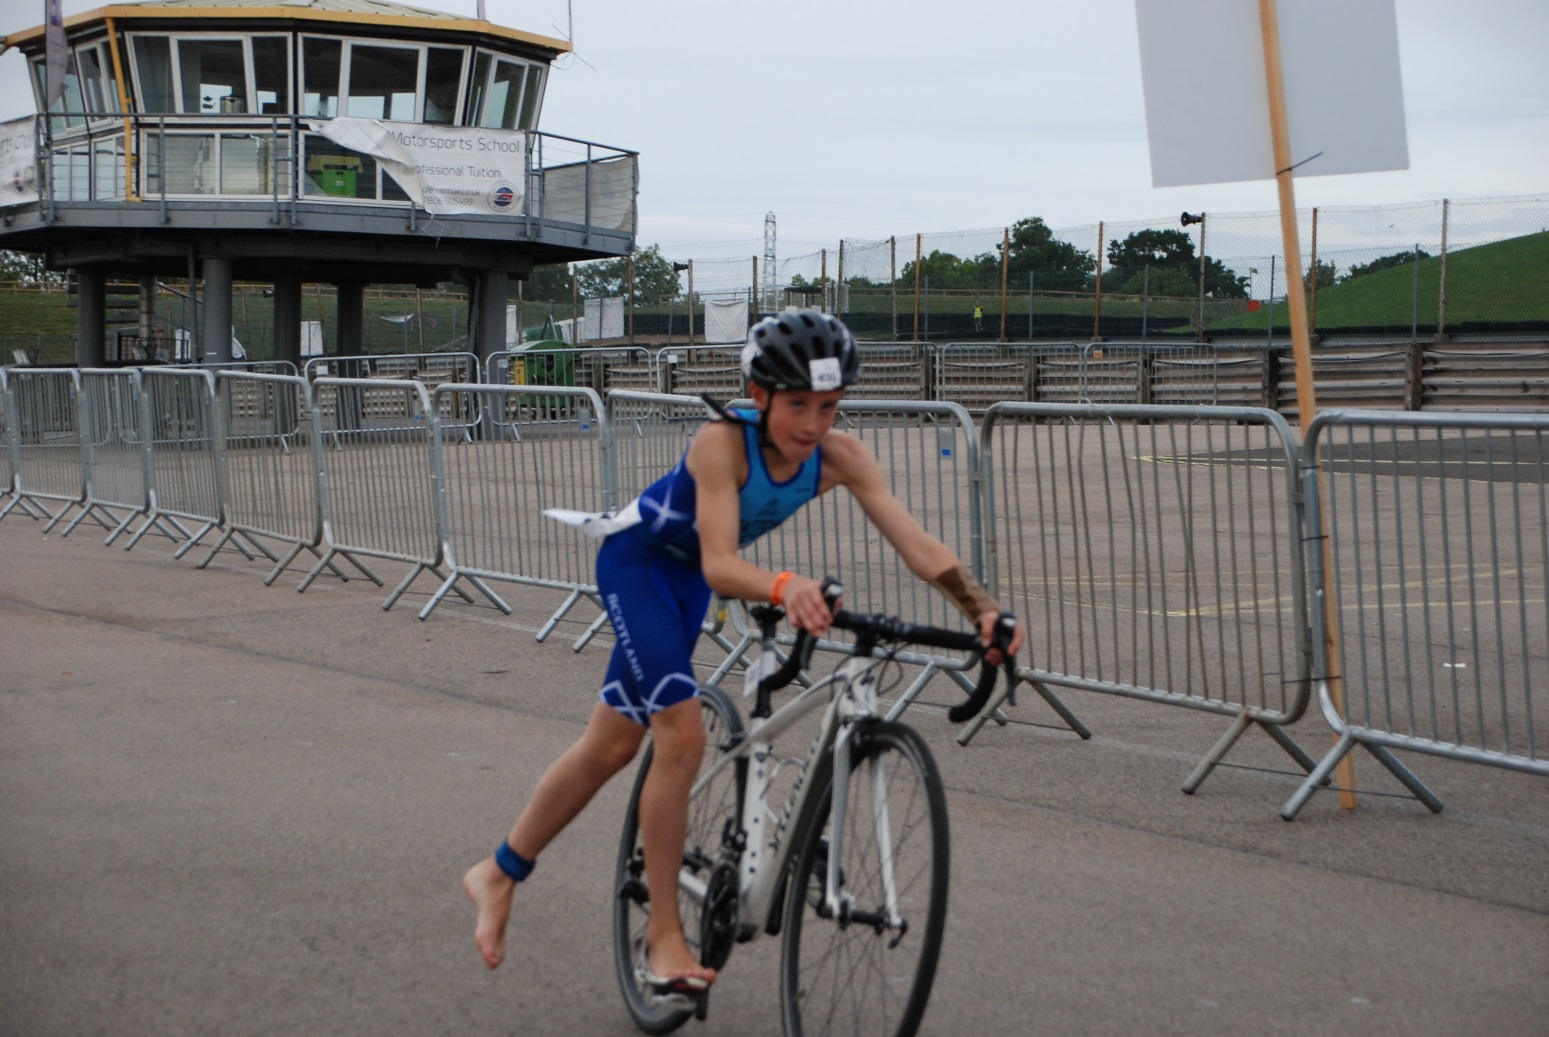 St Columba's pupil competes in the British Triathlon Championships